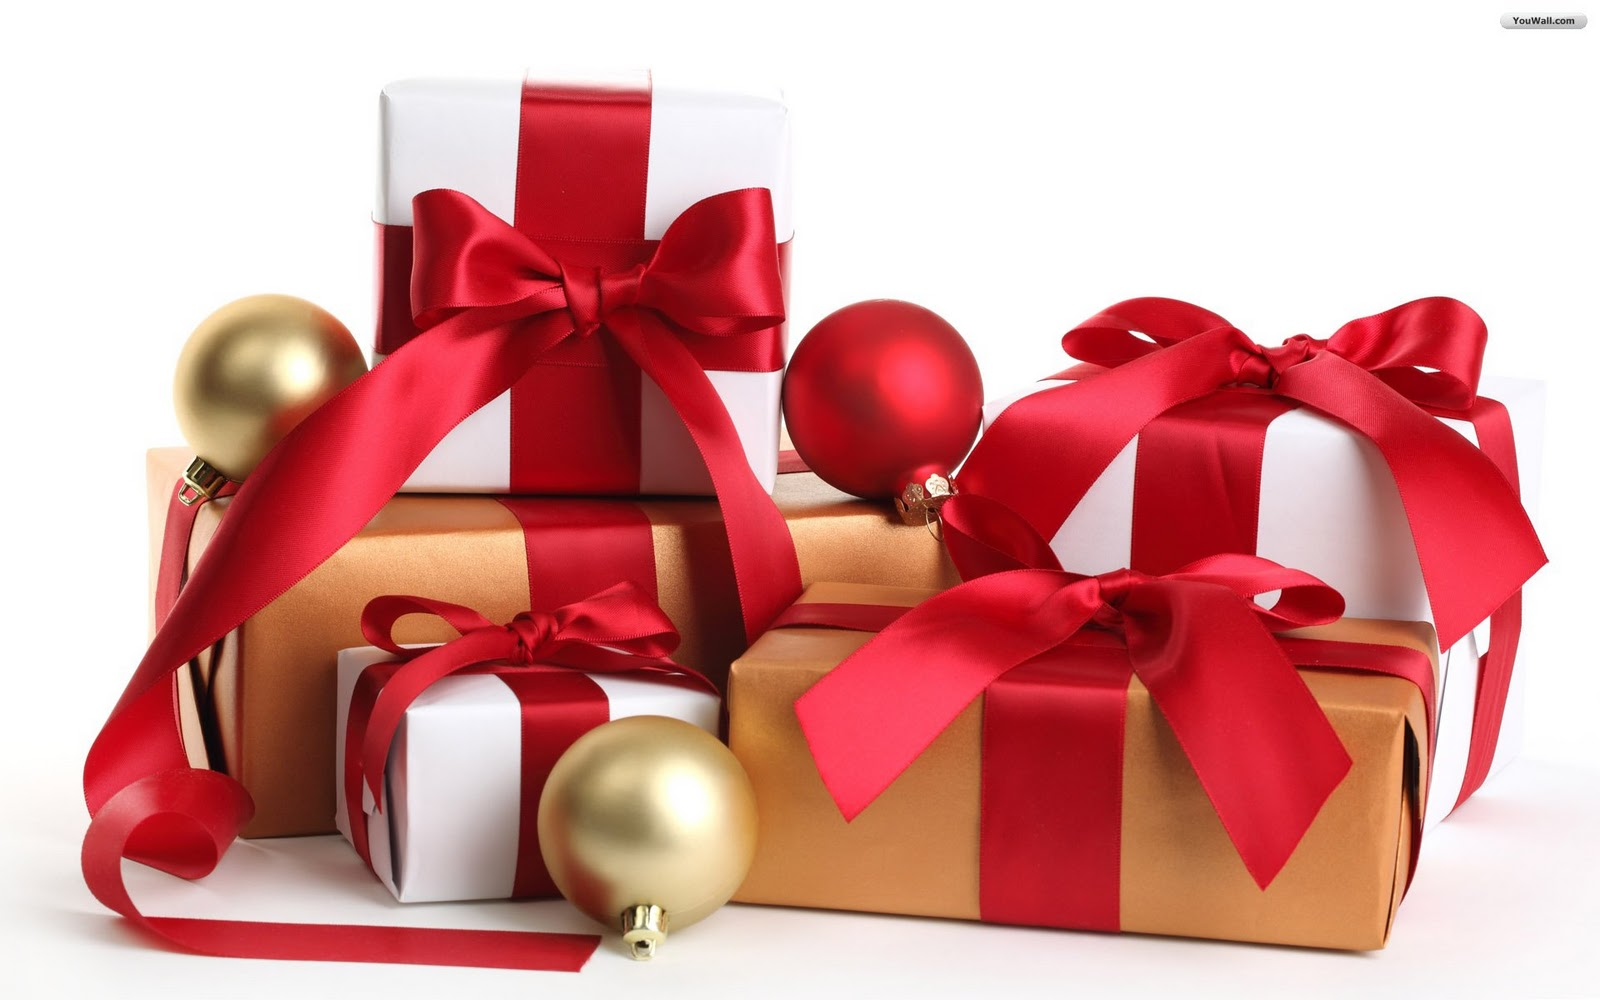 Free Games Wallpapers: Christmas Gifts Wallpapers ...